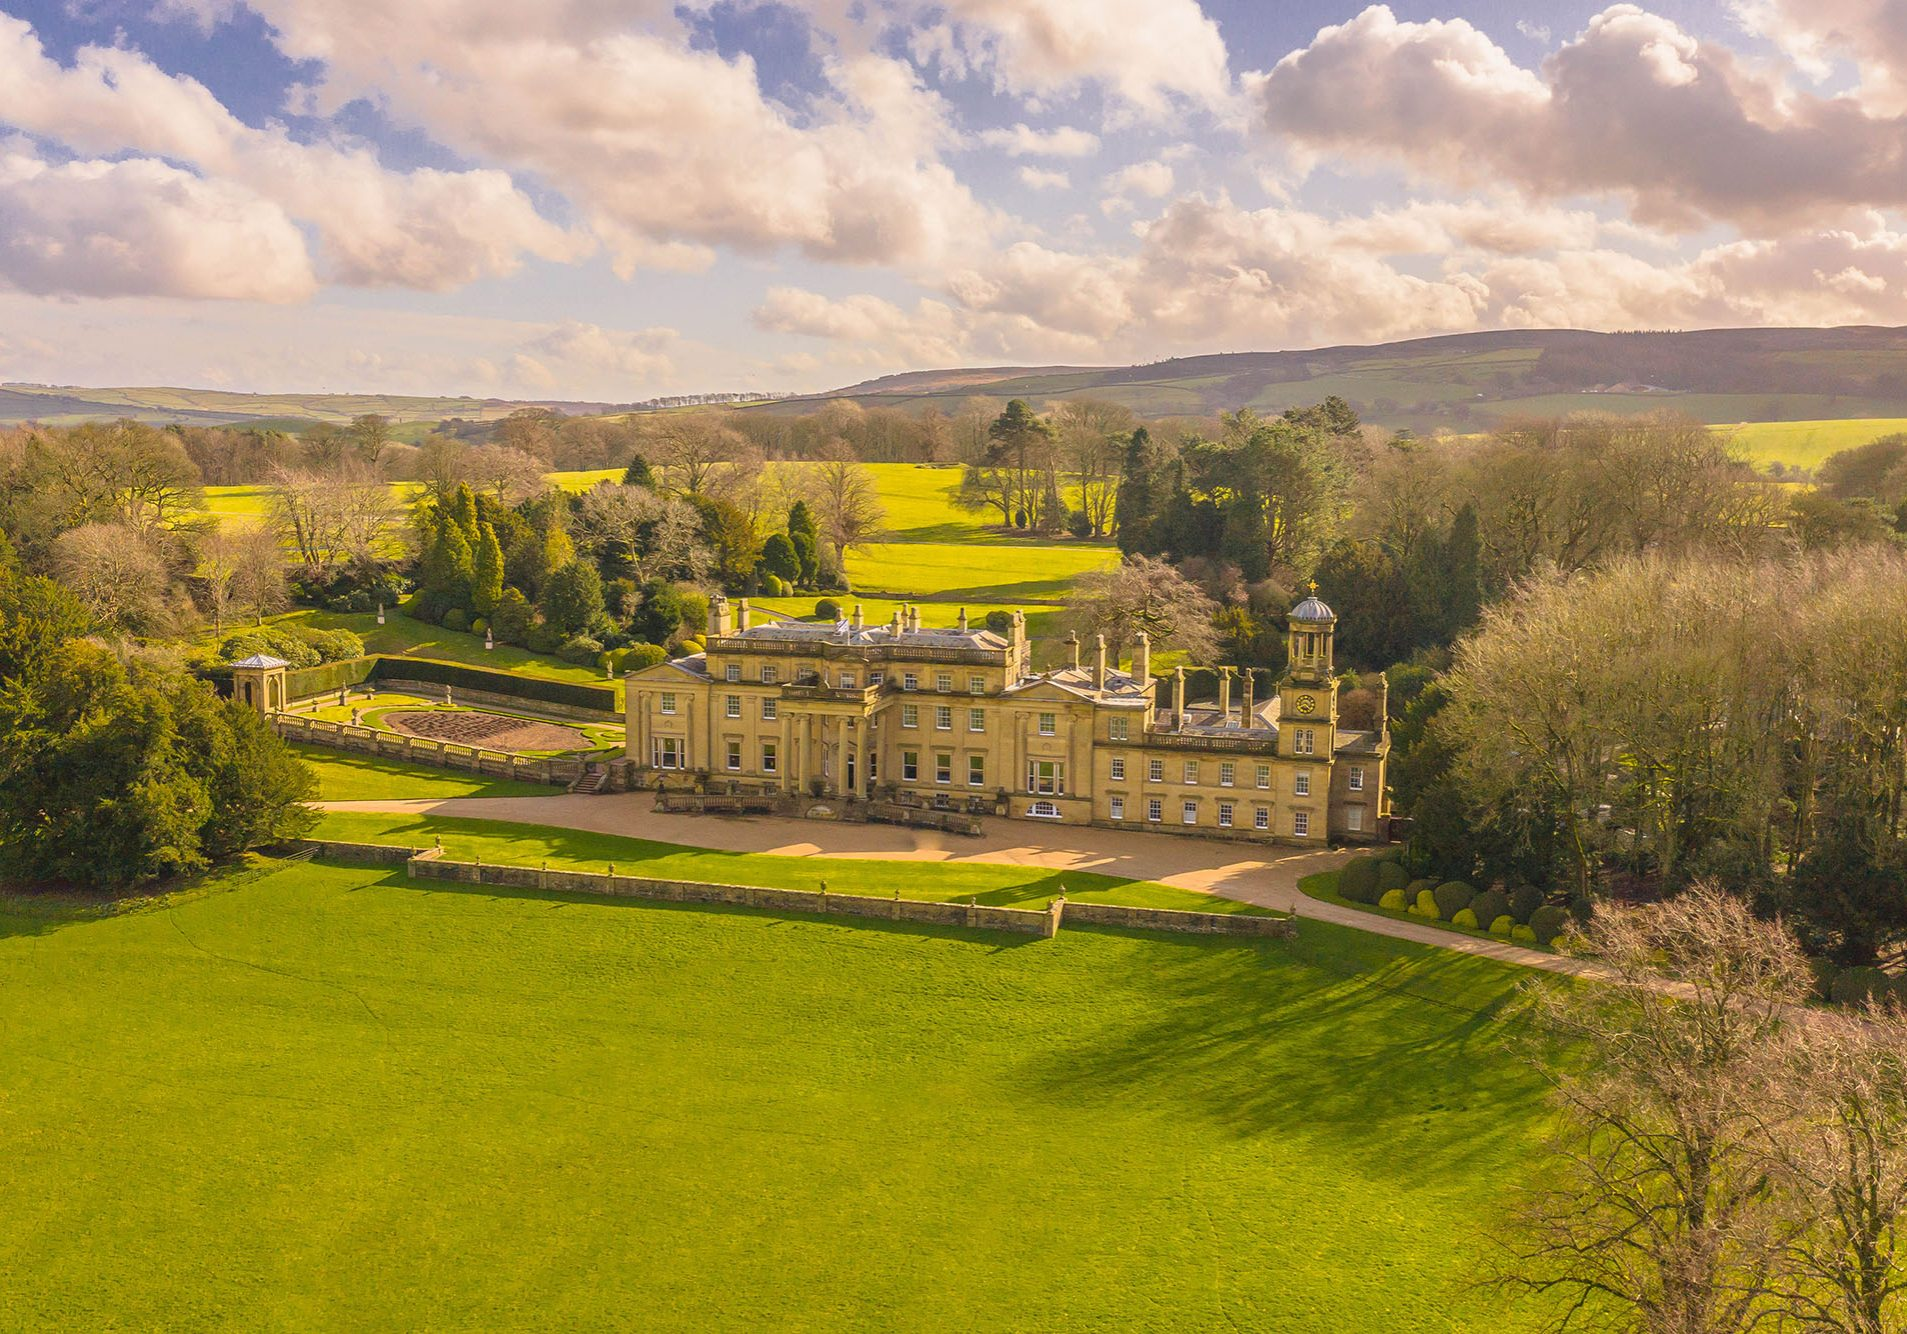 Broughton Hall House of Transformation